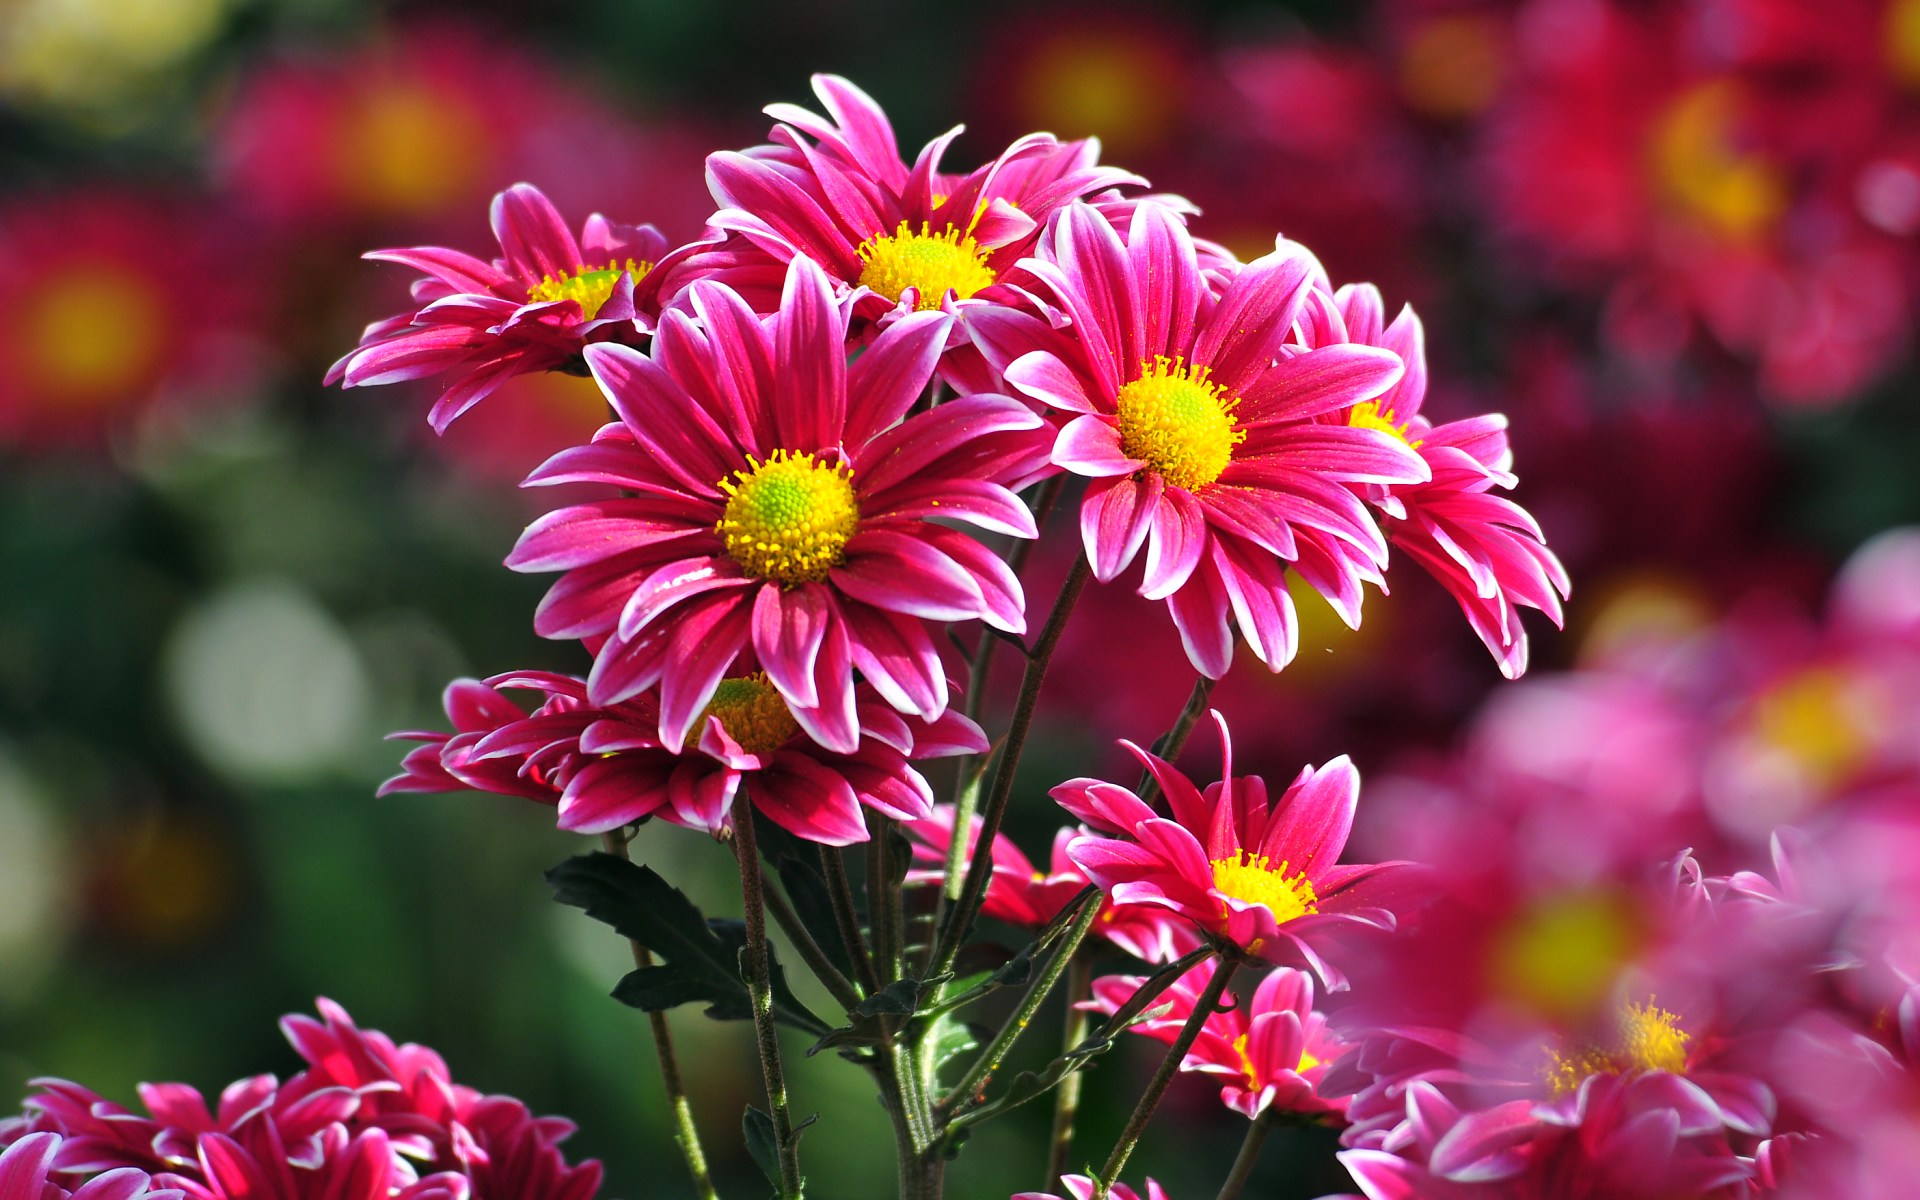 Cool Flowers HD